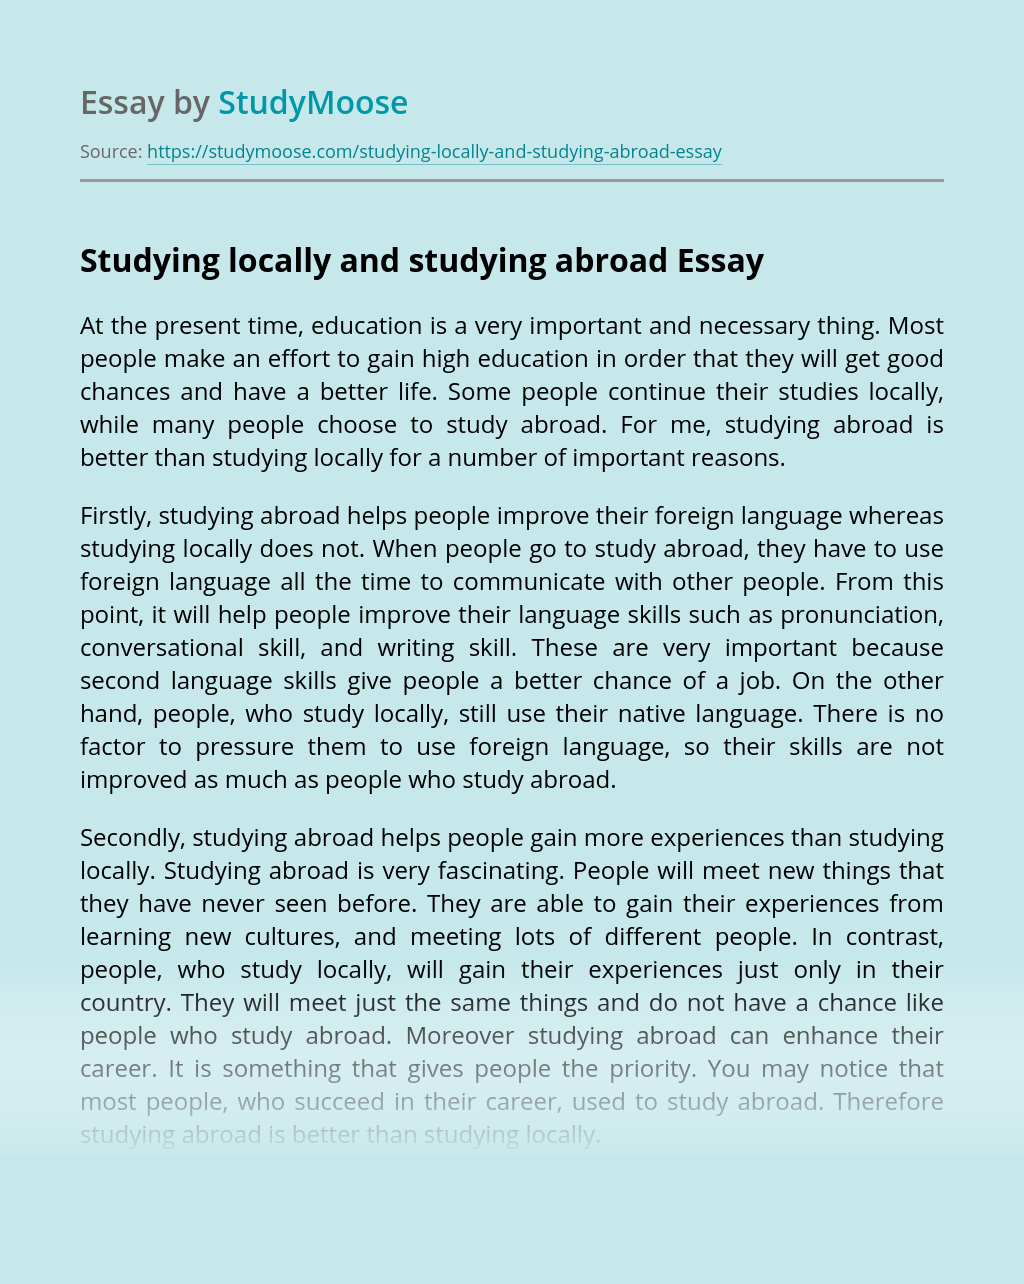 Studying locally and studying abroad